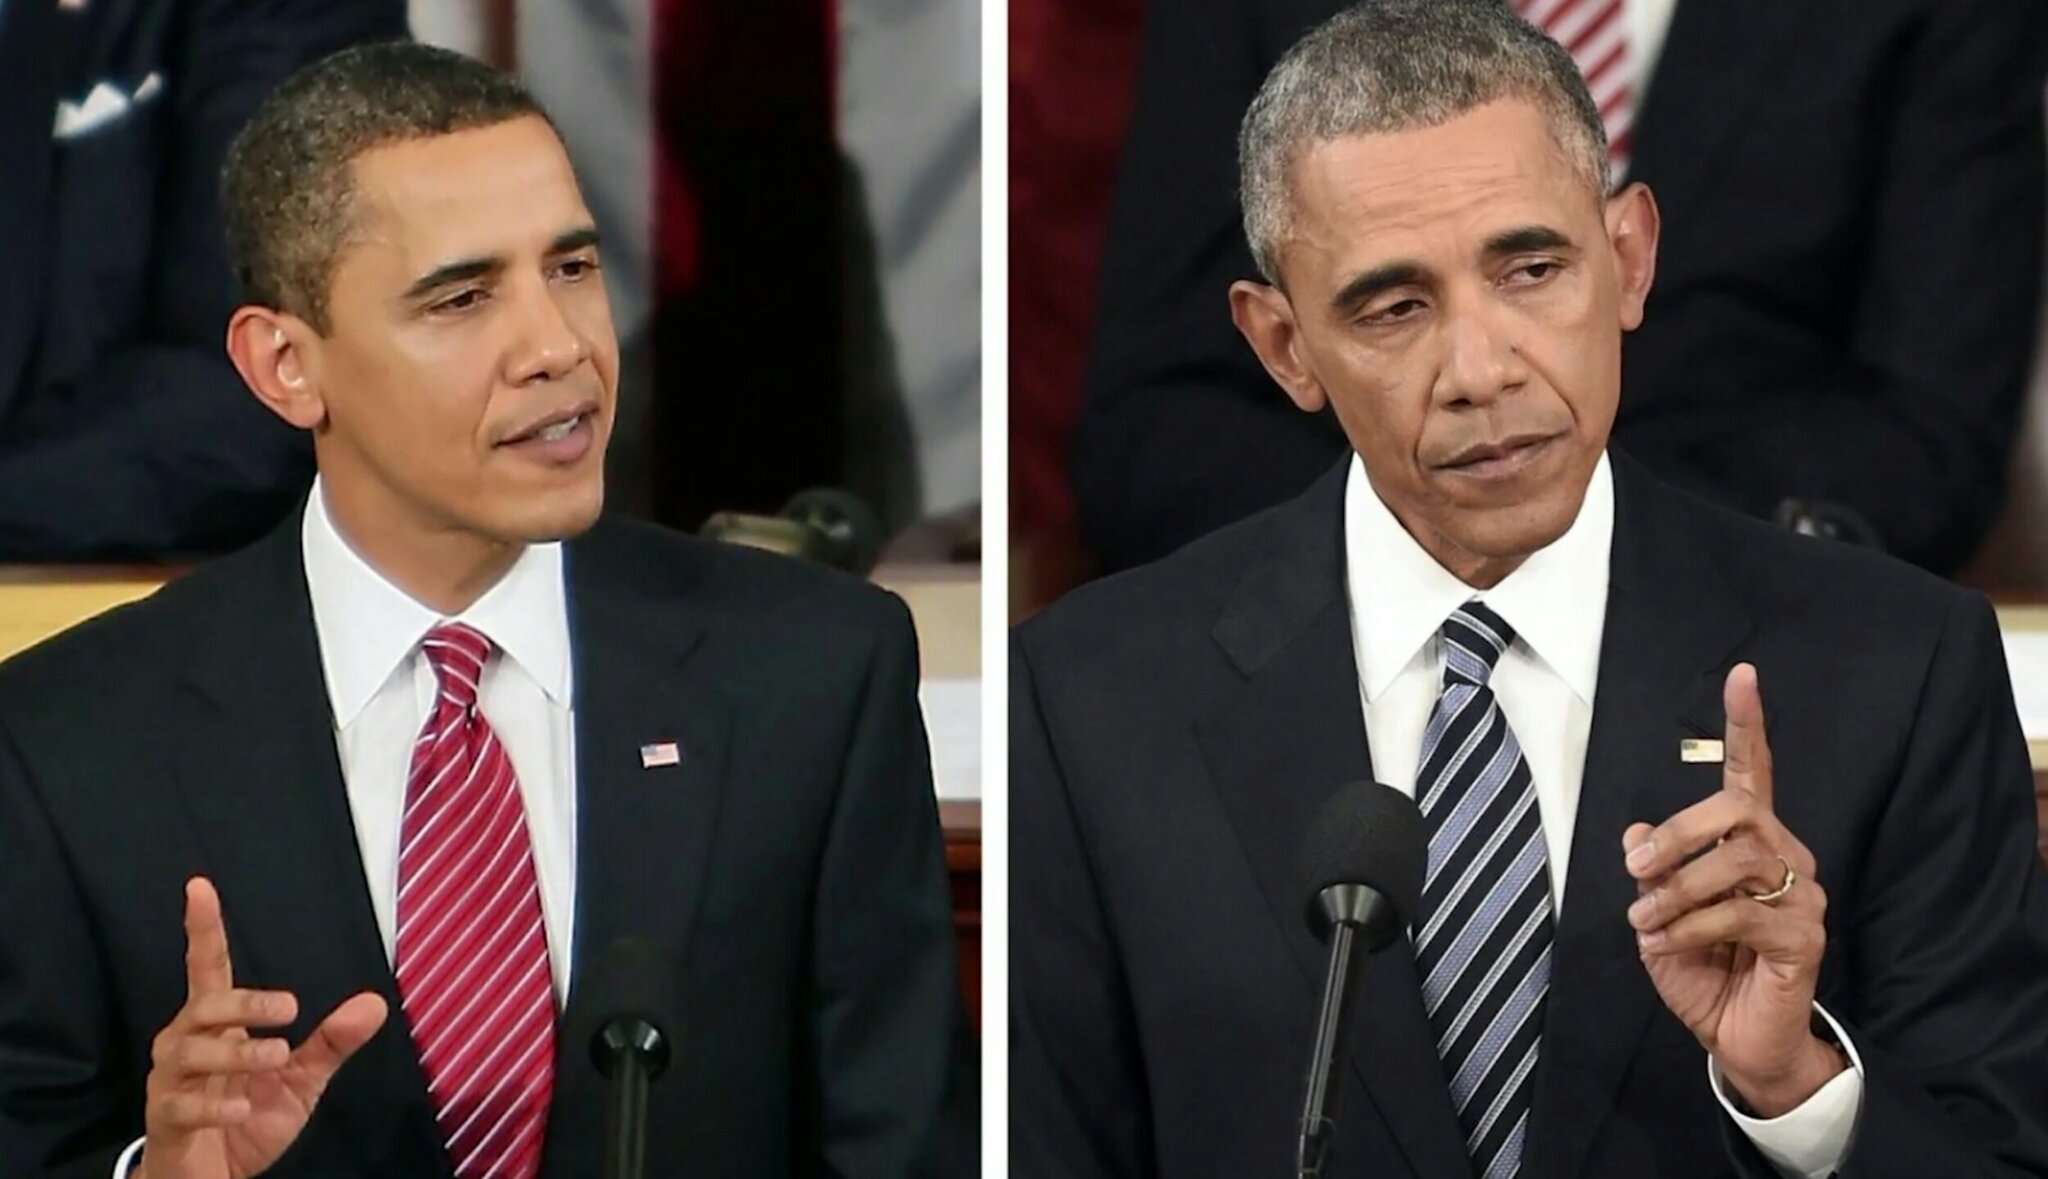 Obama first state of the union vs last - meme